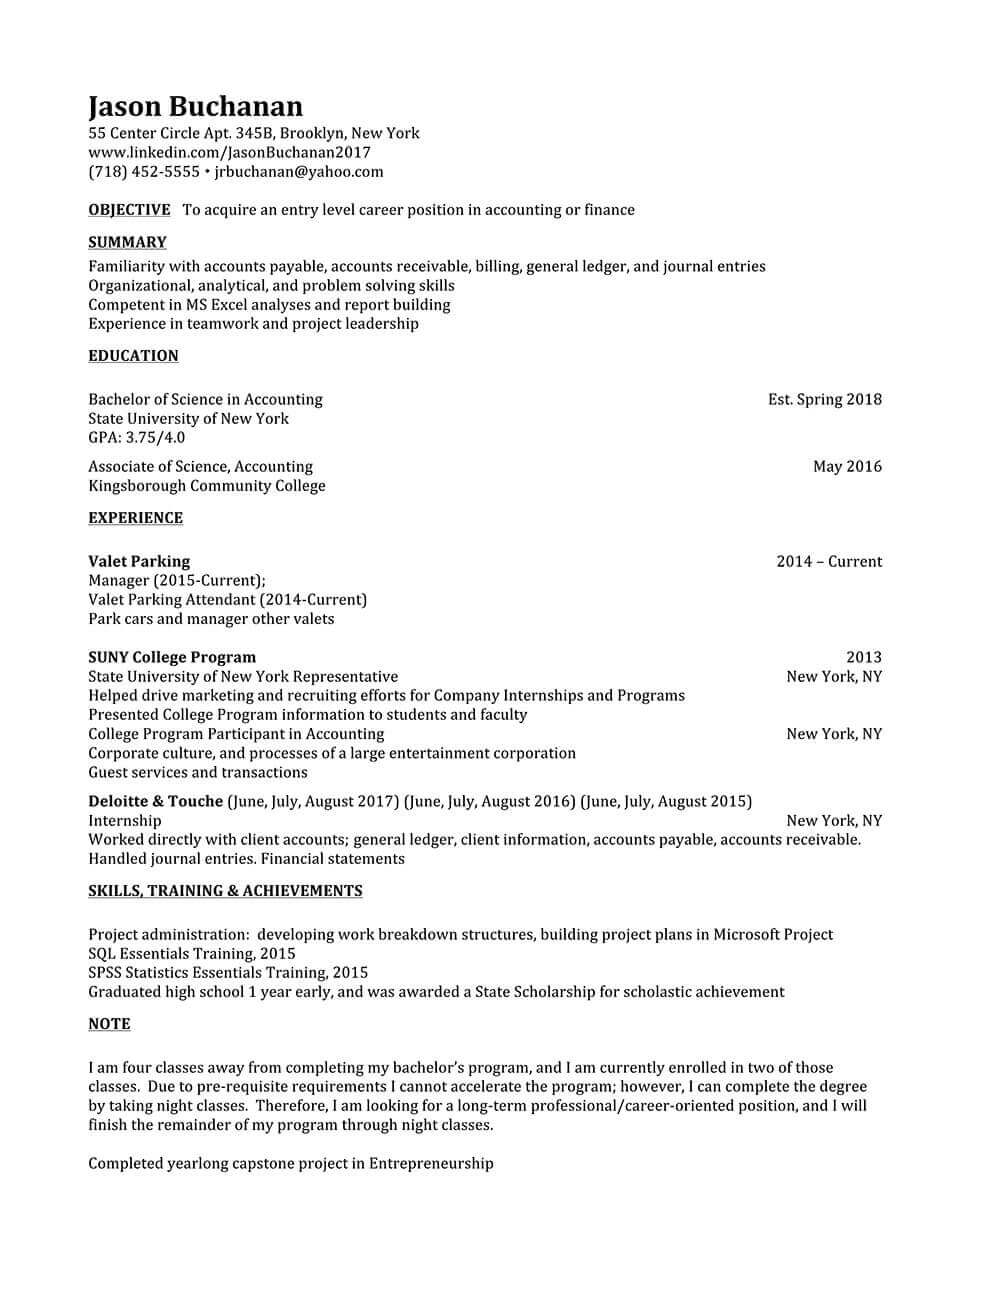 qualifications on a resume